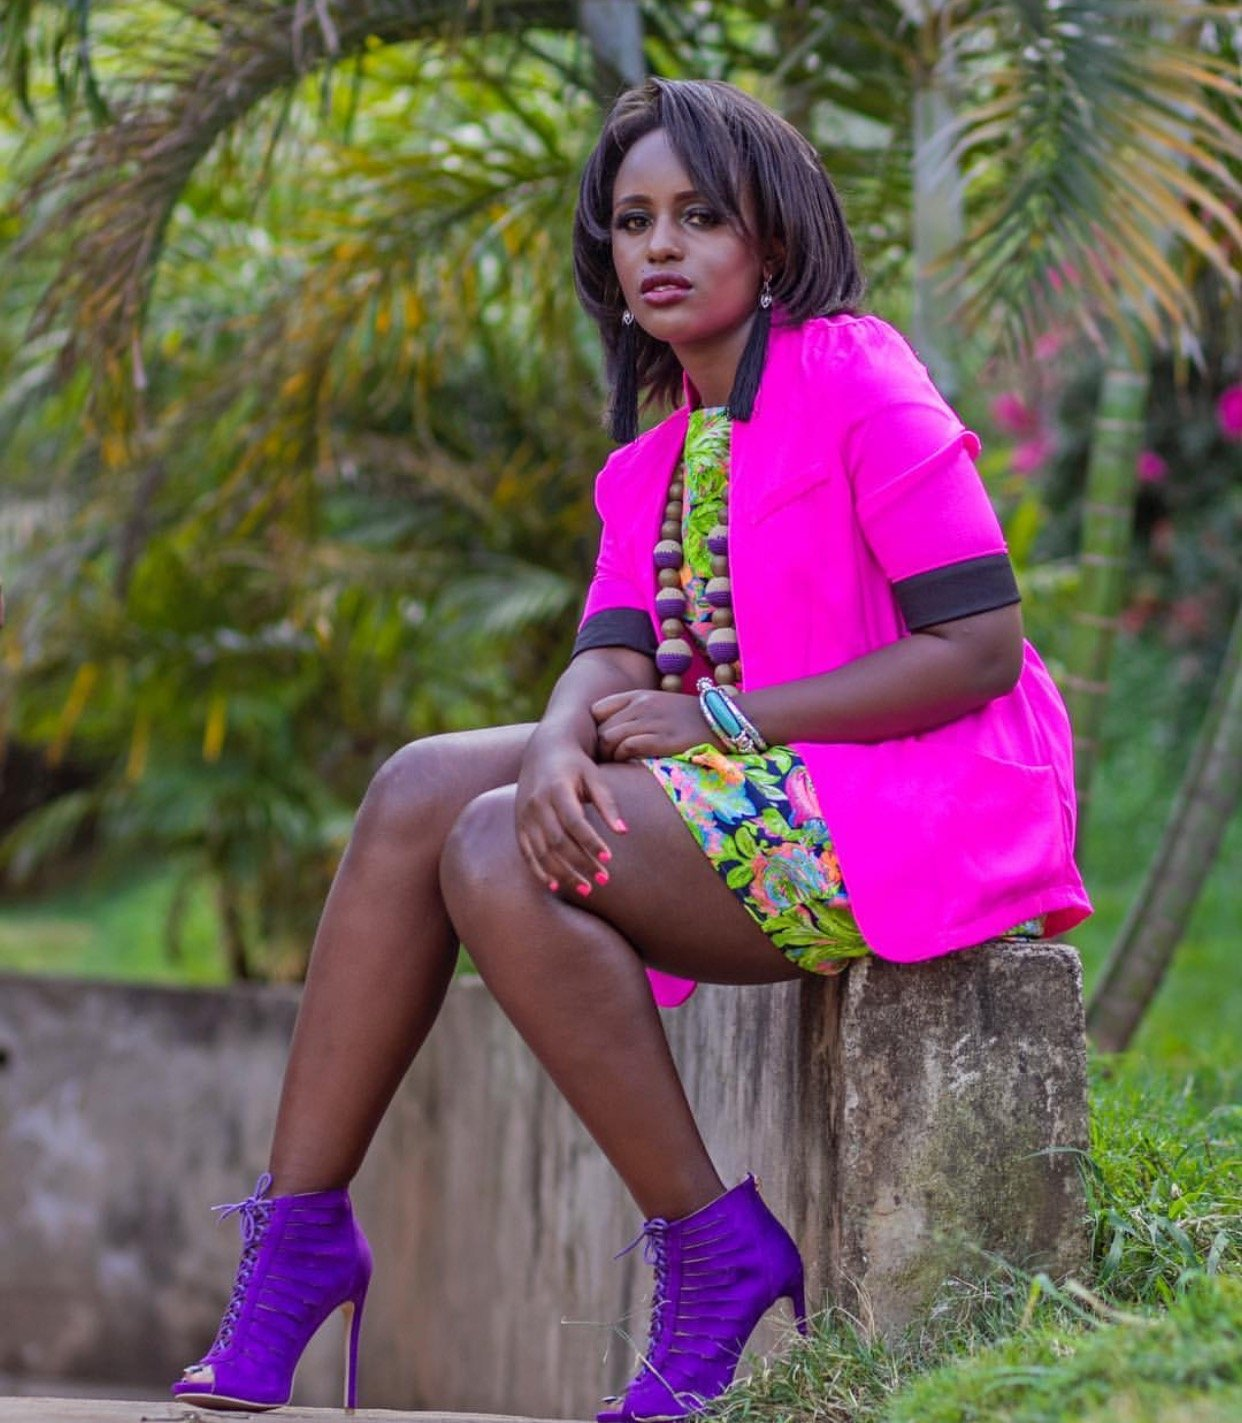 Femi One takes shots at people telling her how to live her life, she is a tough one!